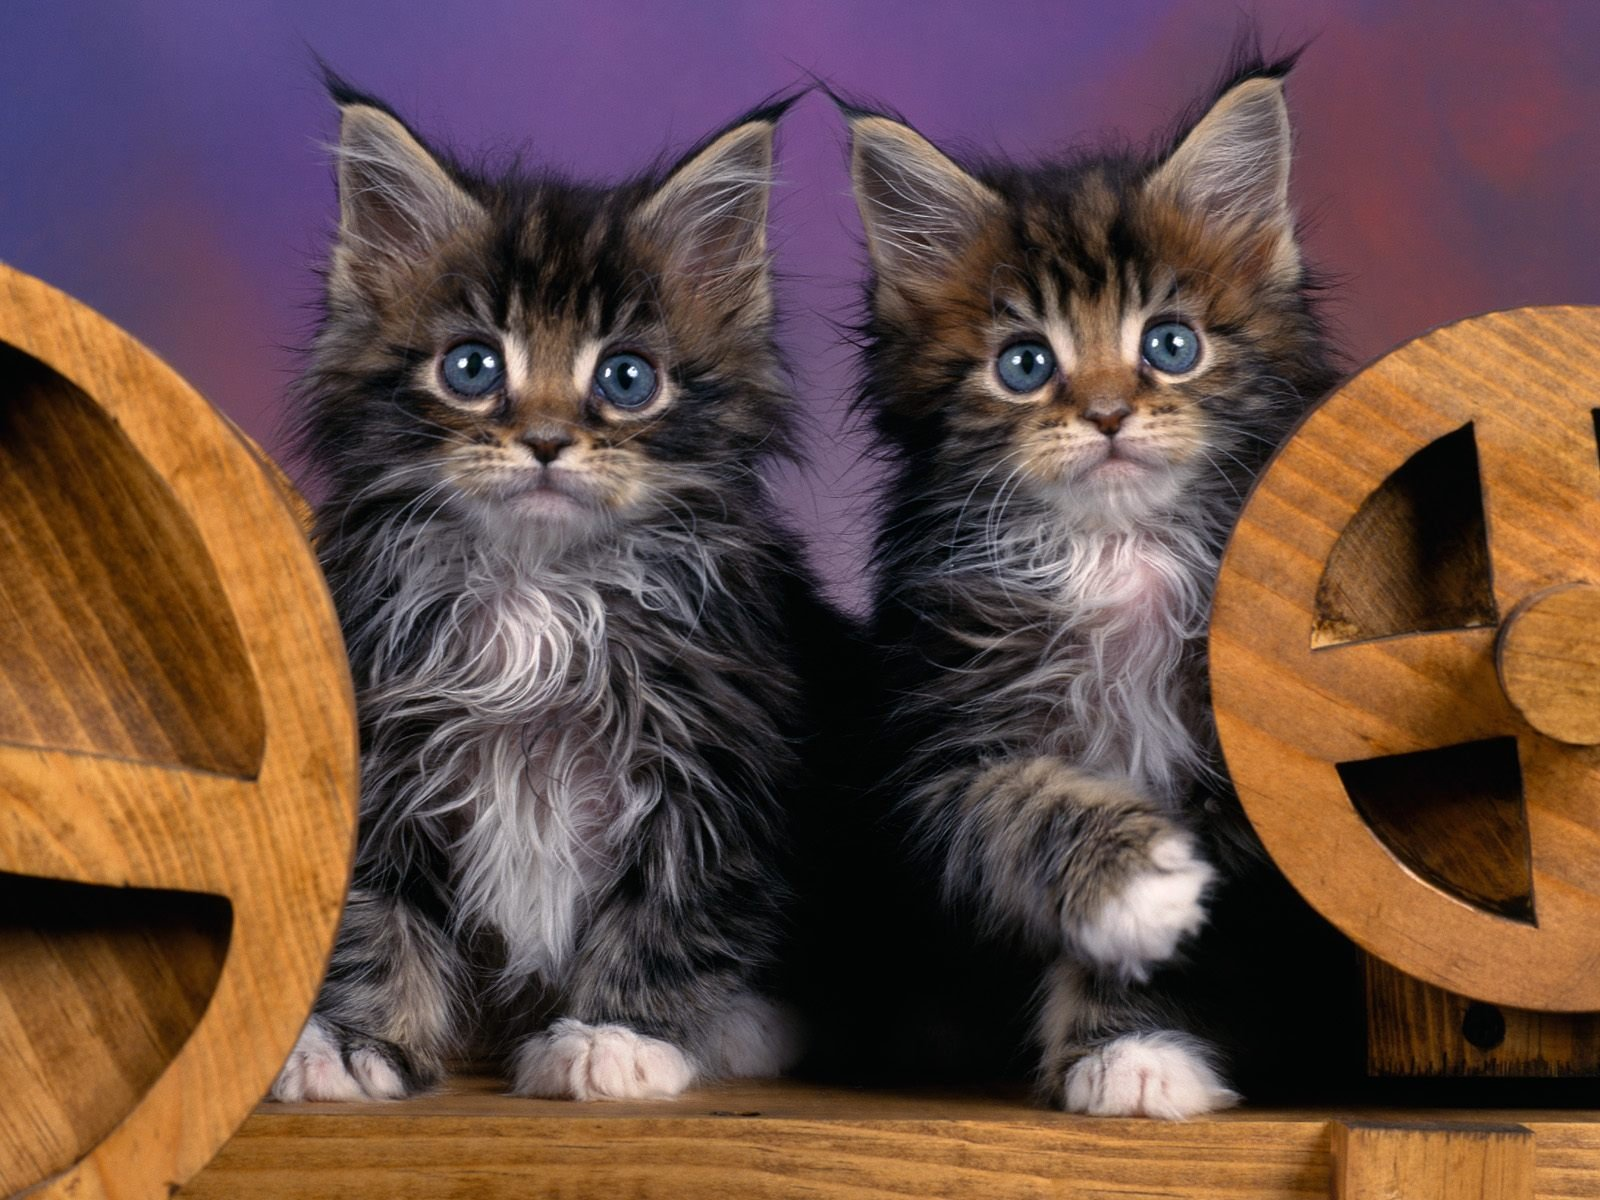 HQ Maine Coon Kittens 1 Wallpaper   HQ Wallpapers 1600x1200